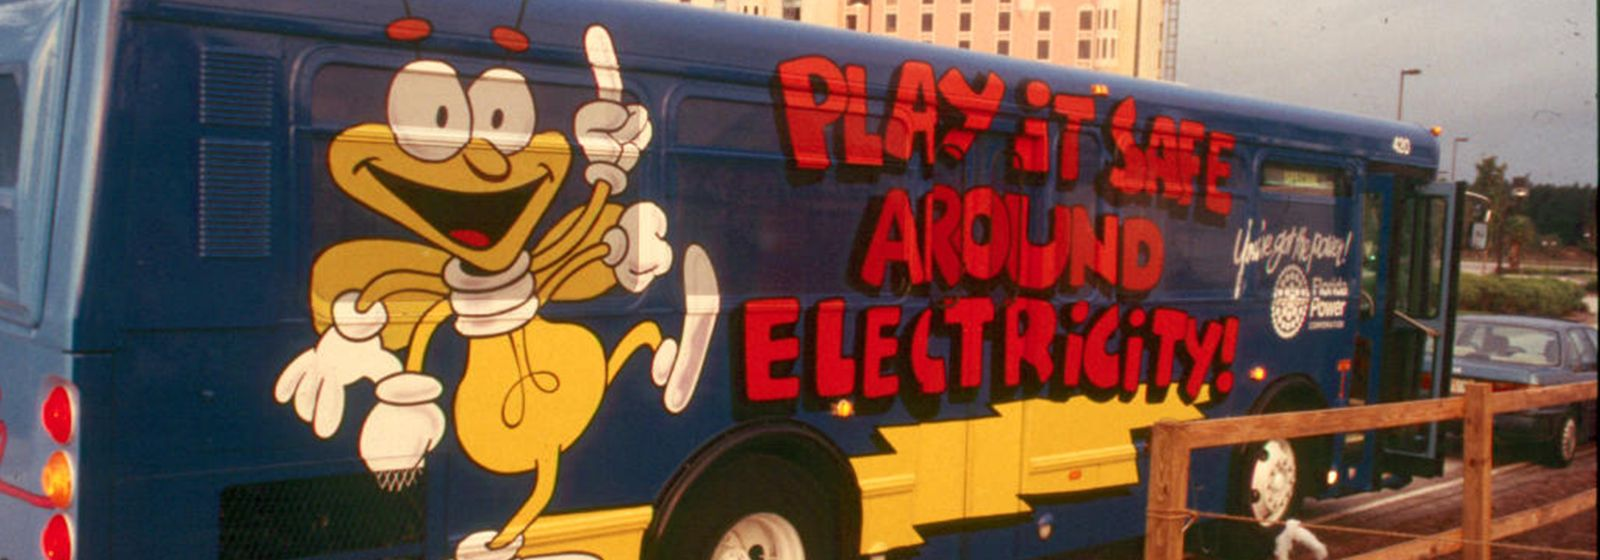 Where is this bus, and who's on first?